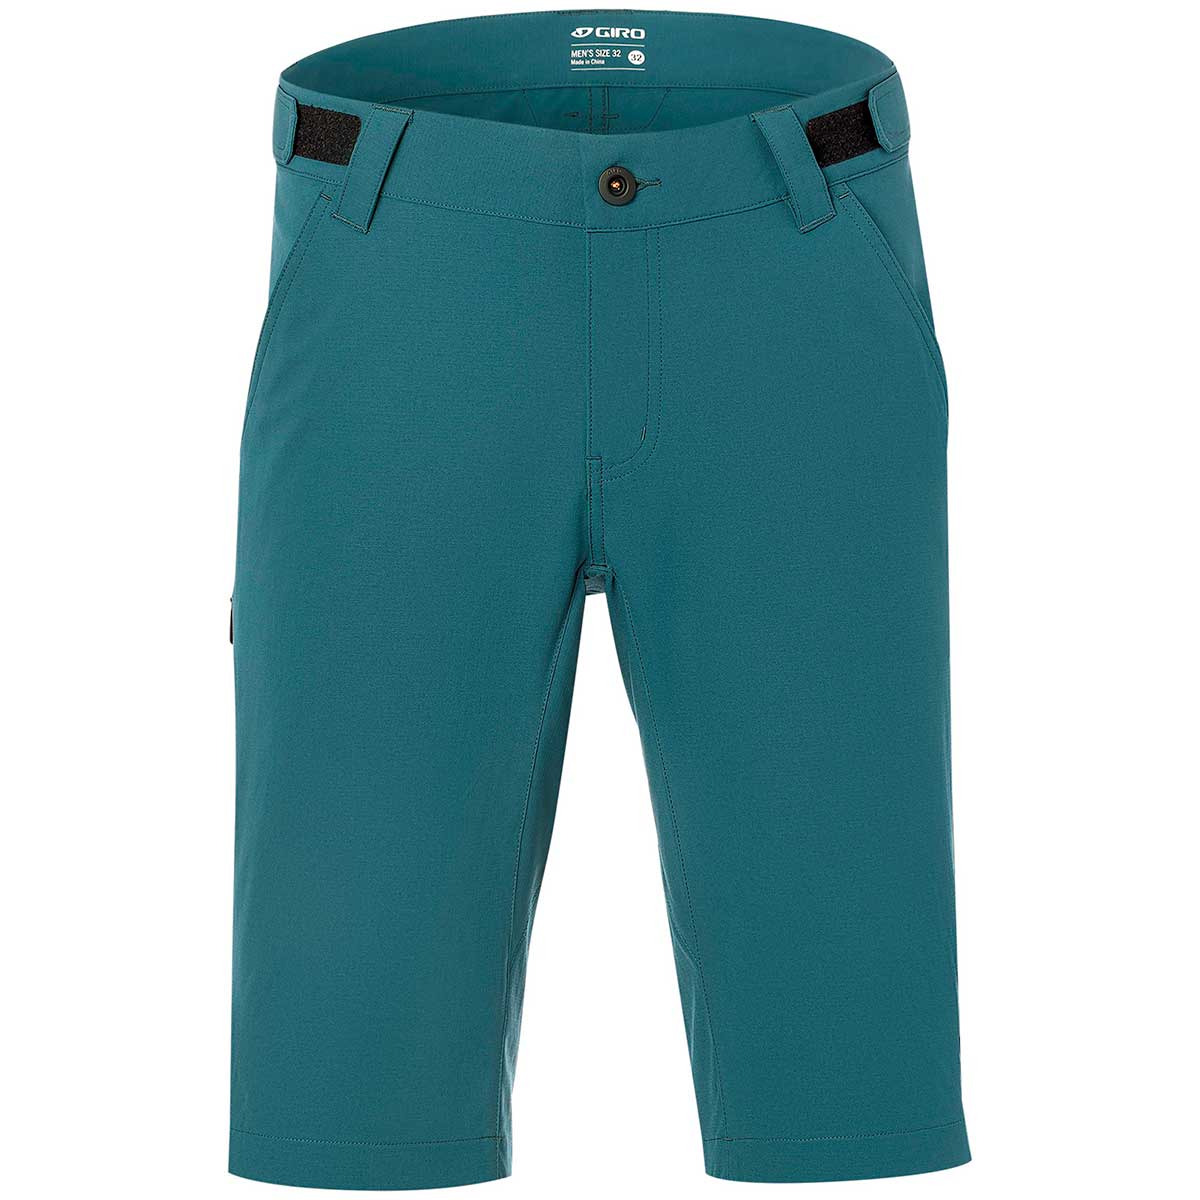 Giro men's Arc Short in True Spruce front view